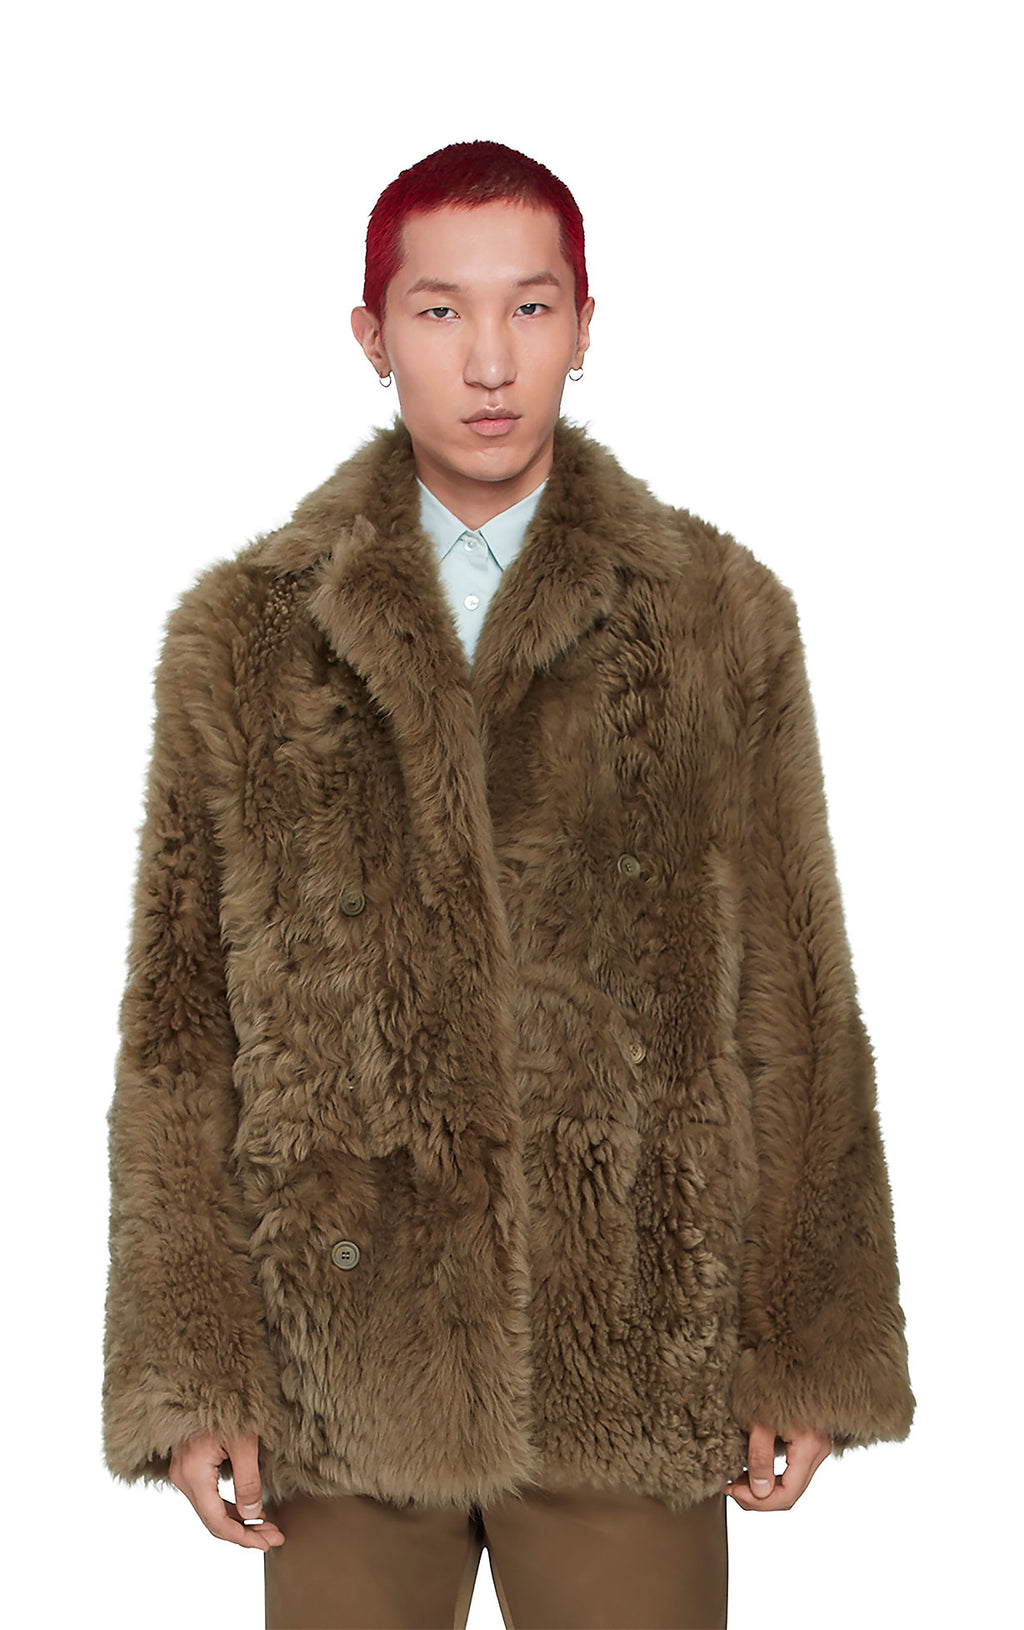 Emery Tigrado Shearling Peacoat